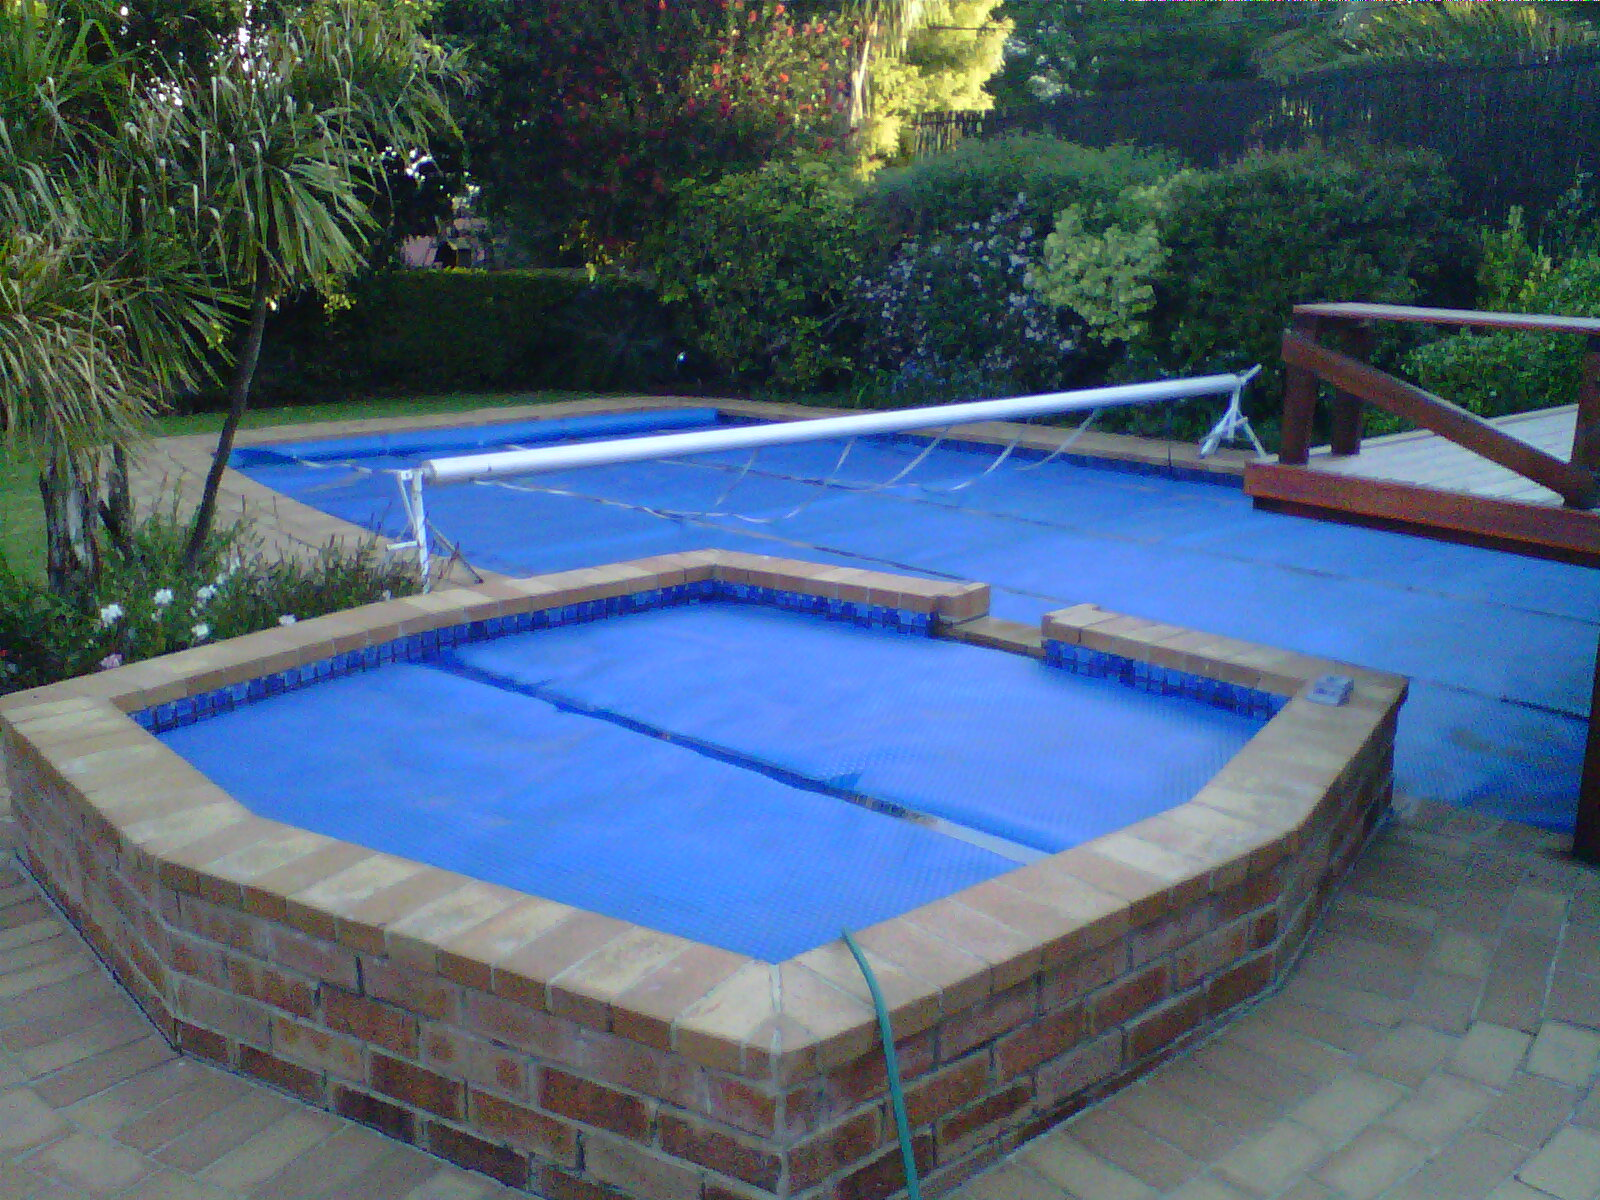 Jacuzzi Pool Covers Swimming Pool Solar Blankets Covers